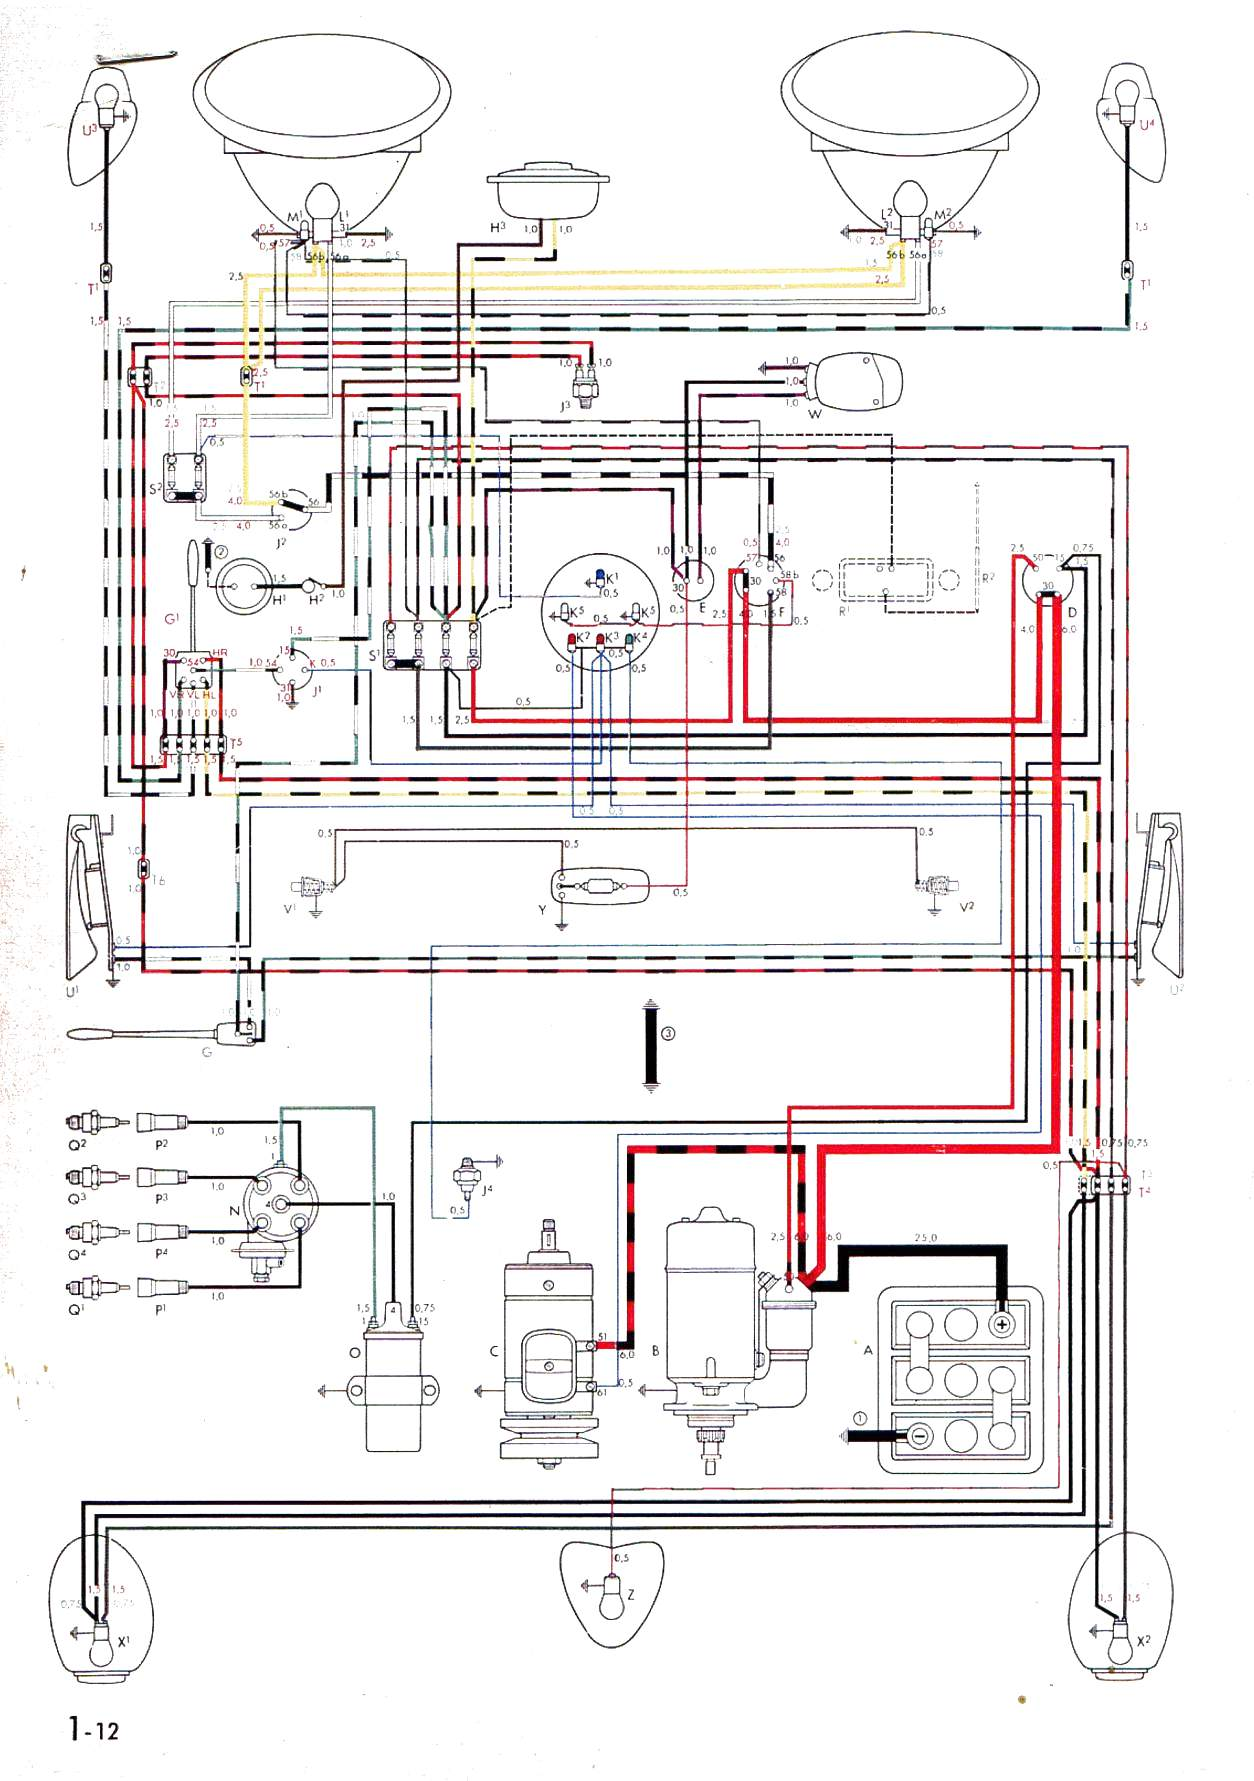 hight resolution of vintagebus com vw bus and other wiring diagrams 64 mg wiring diagram